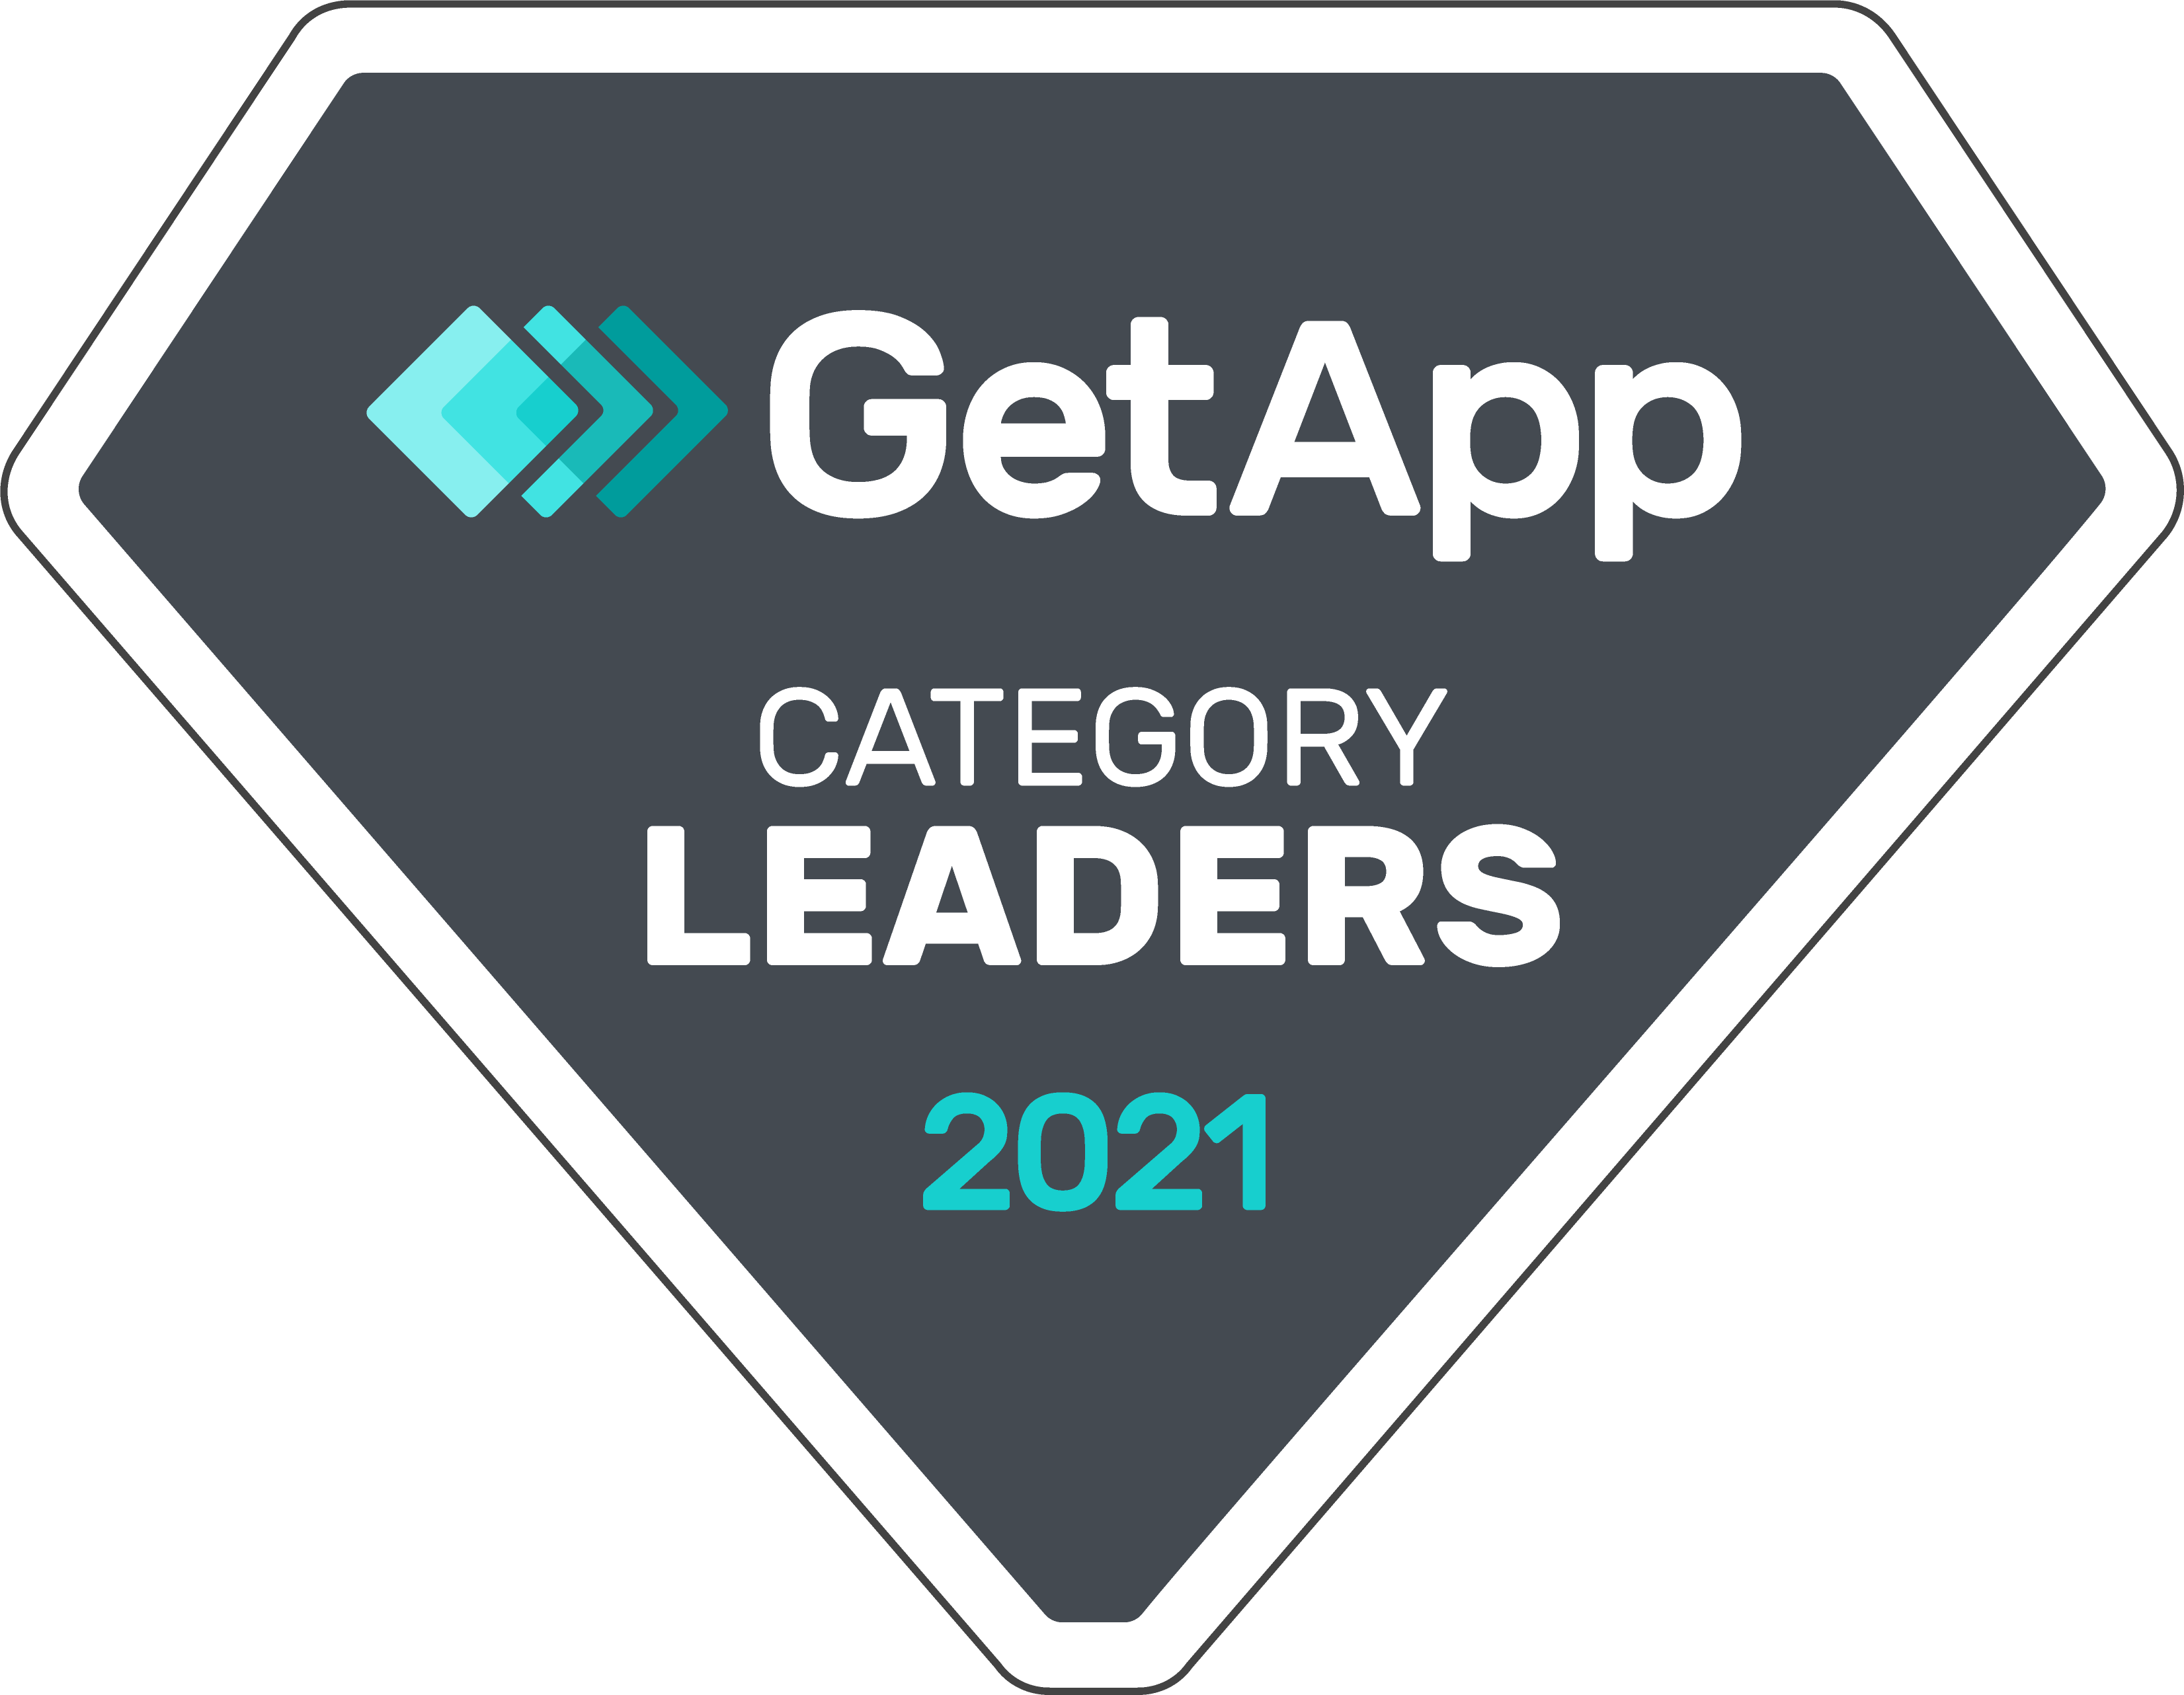 GetApp Category Leaders